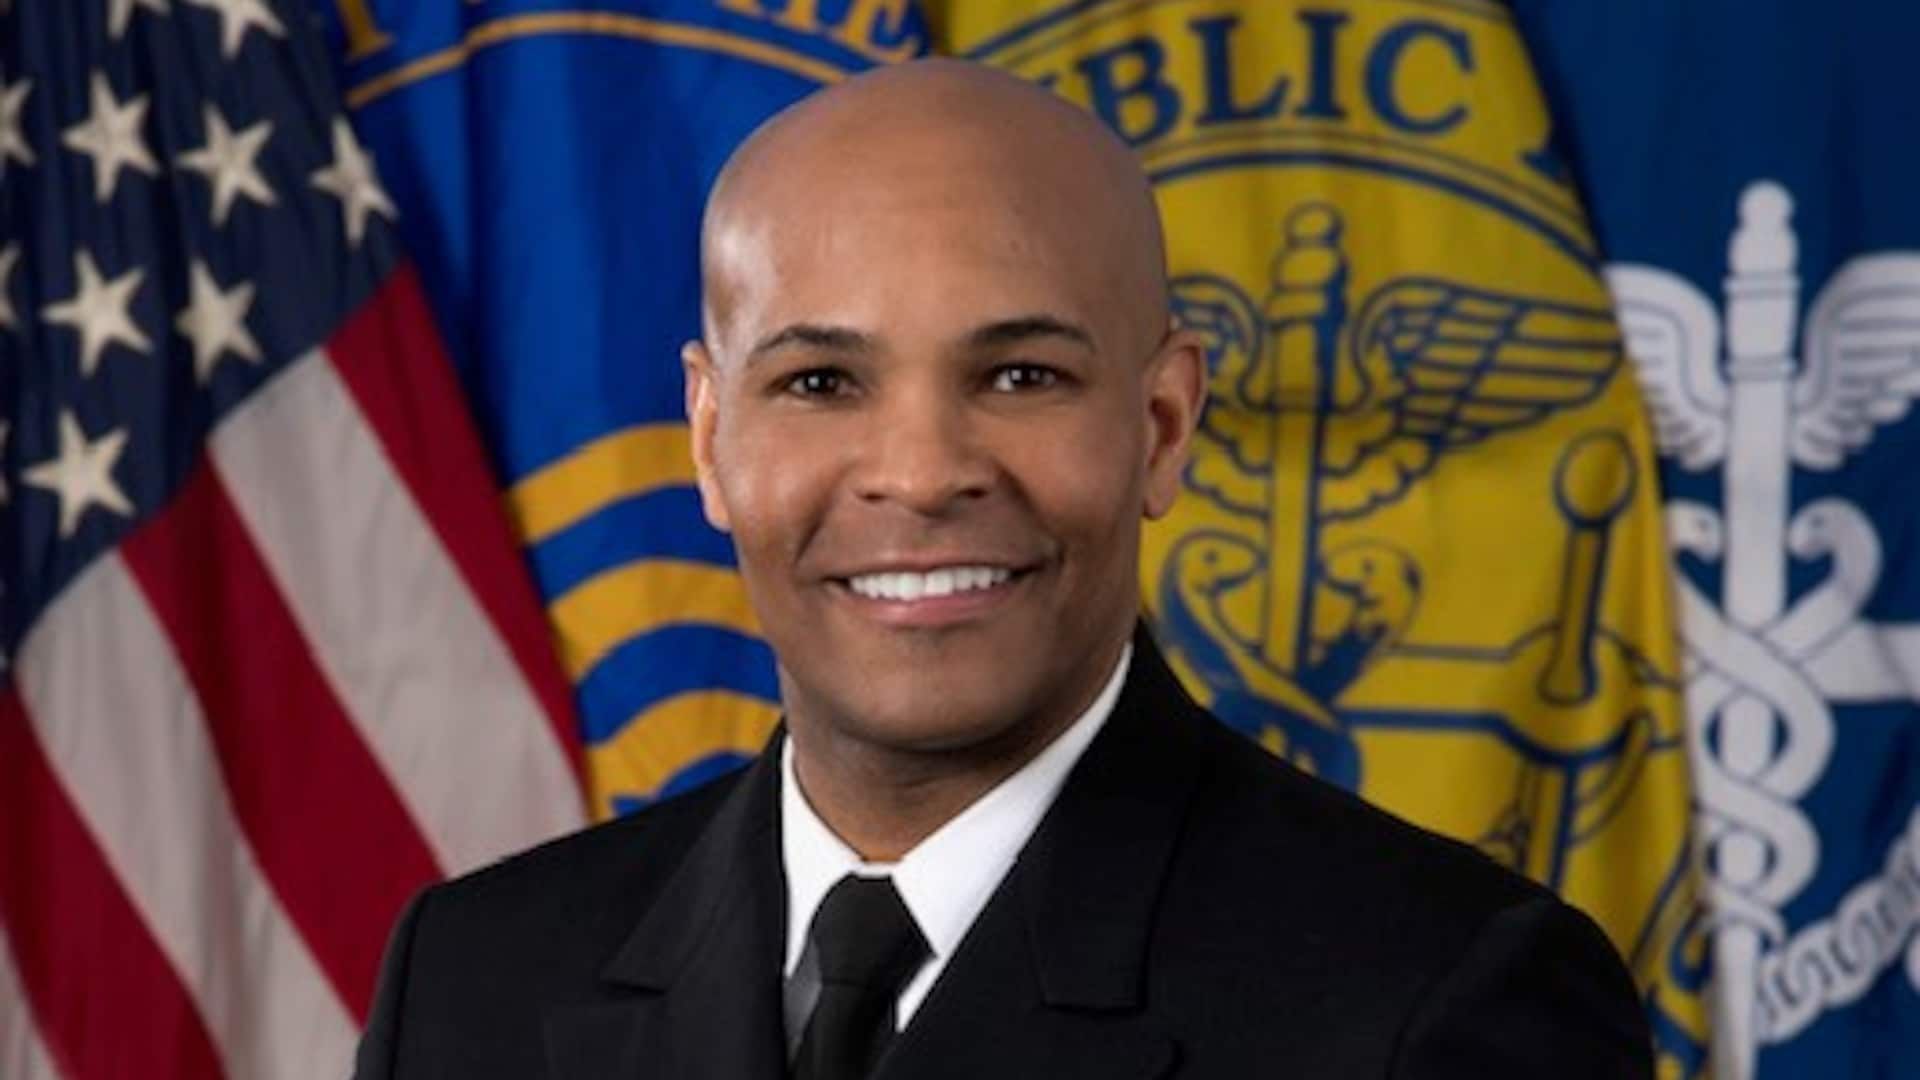 Q&A: Surgeon General Jerome Adams on maintaining mental health during challenging times